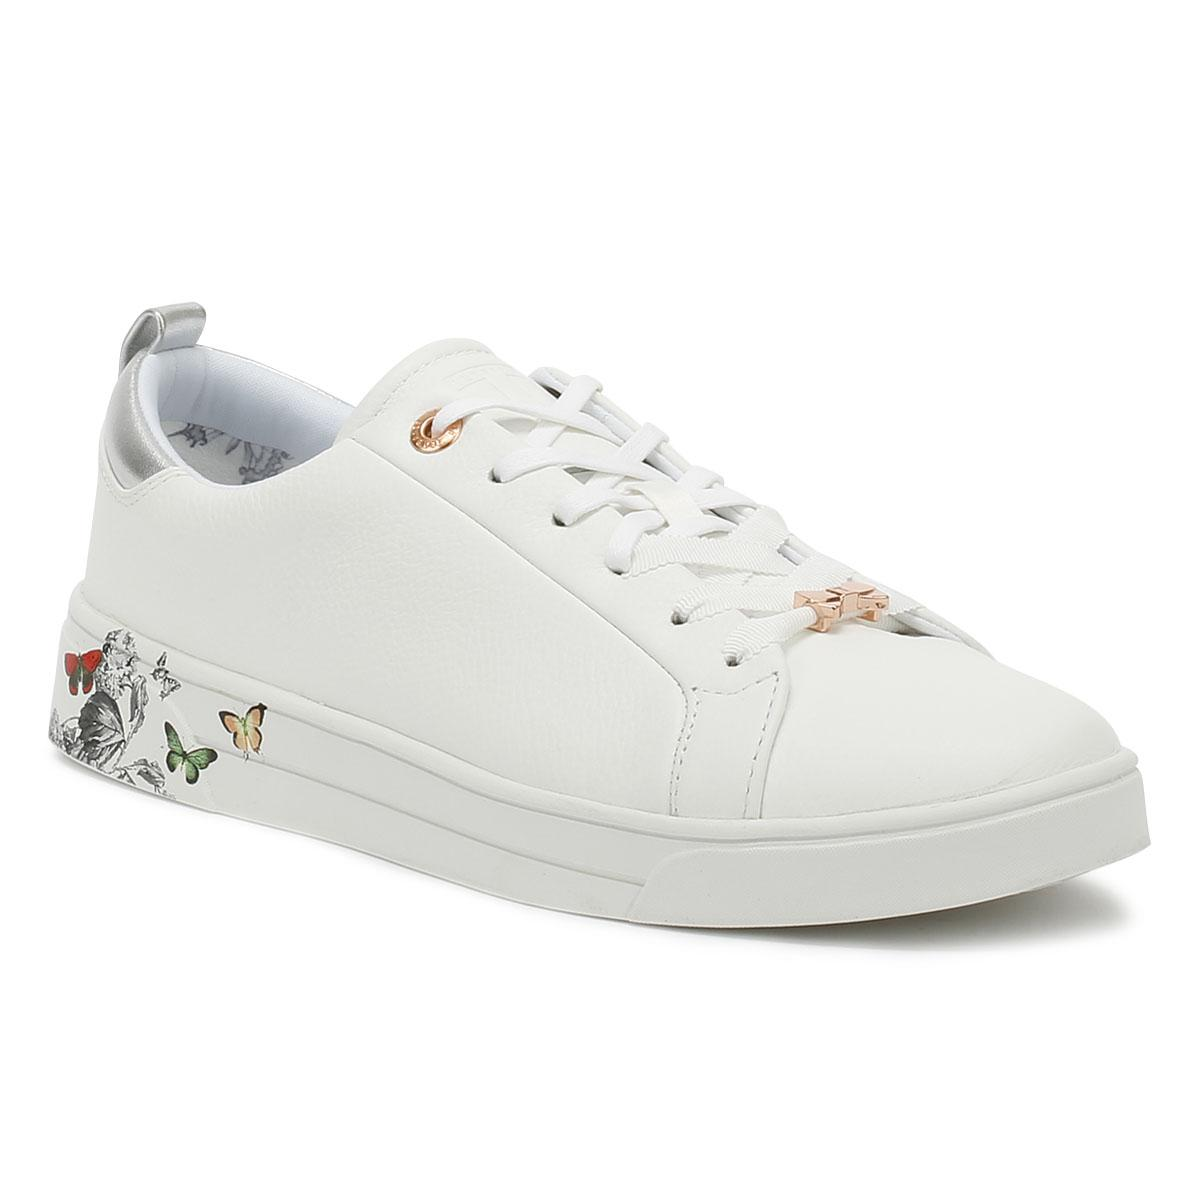 ff44778a0dcc Lyst - Ted Baker Mispir Womens White Narnia Leather Trainers in ...